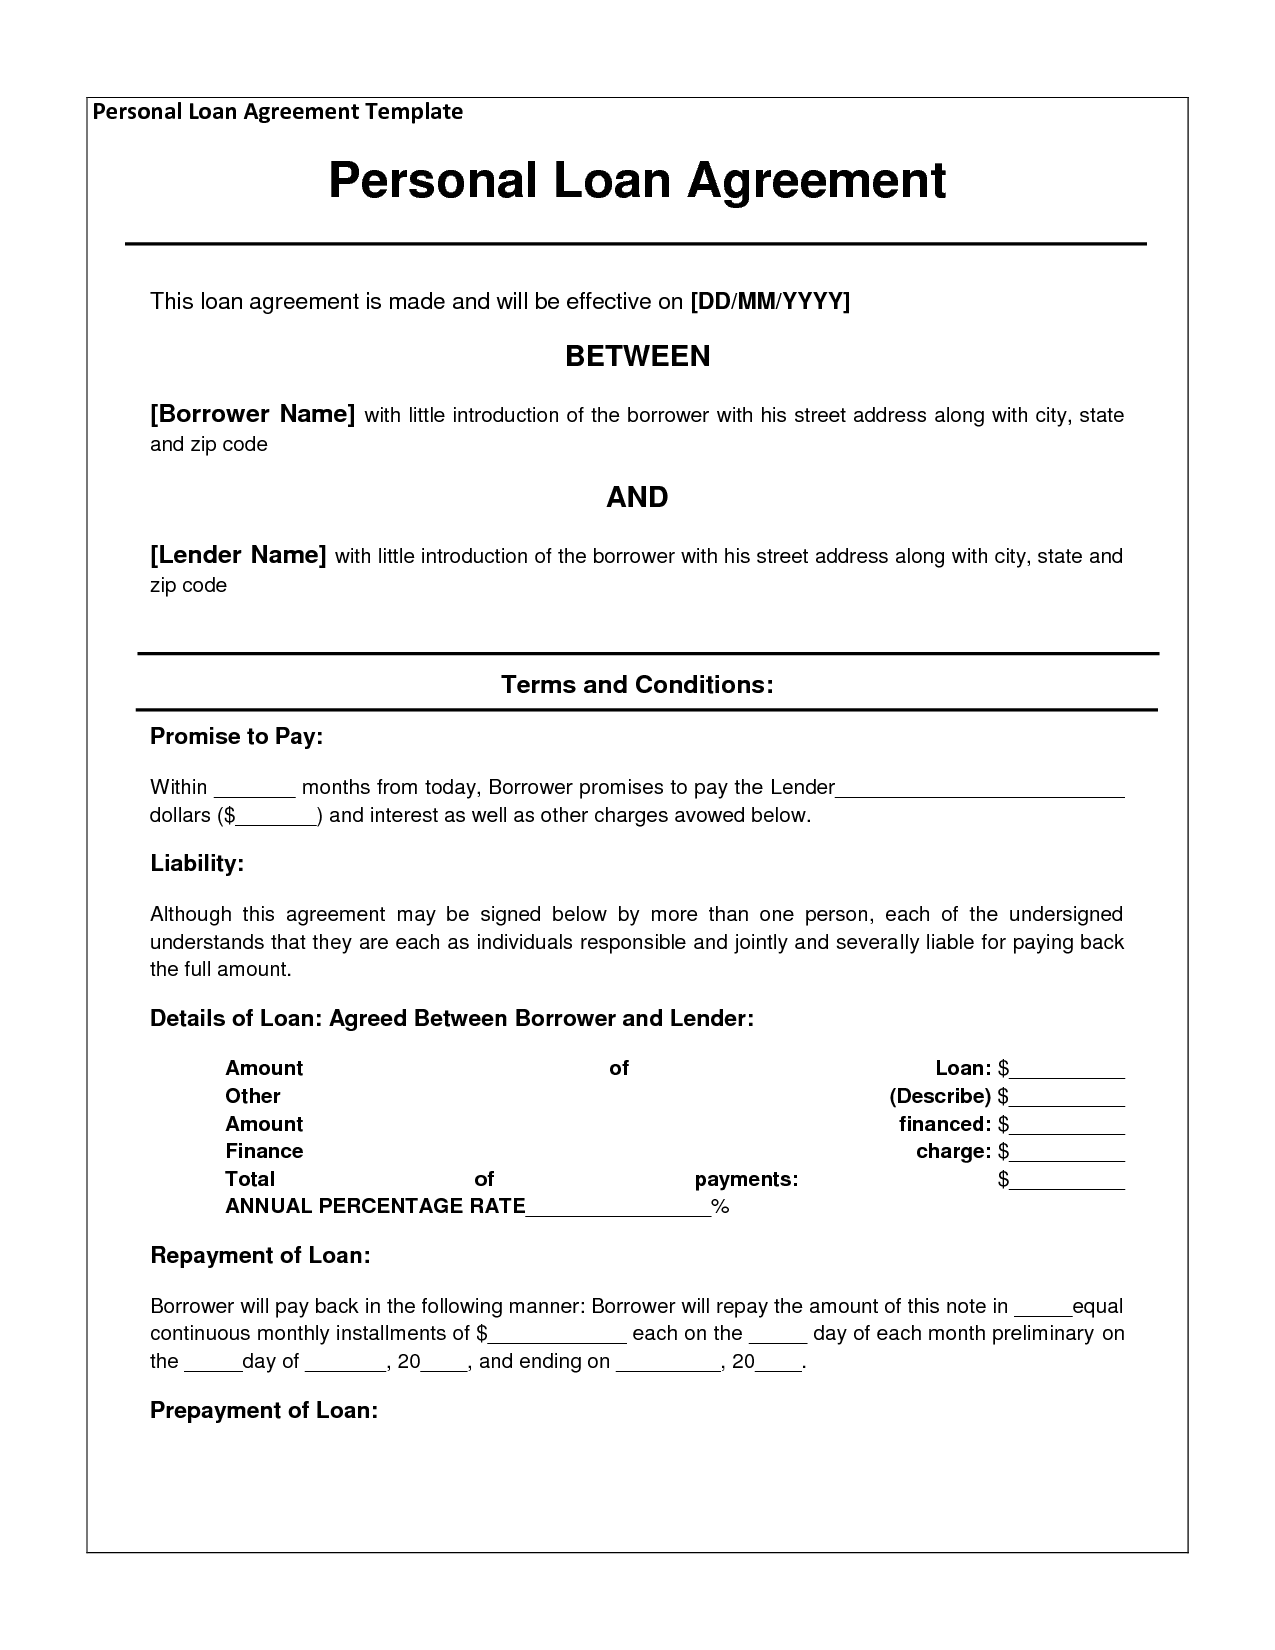 Personal Loan Agreement | Printable Agreements private loan